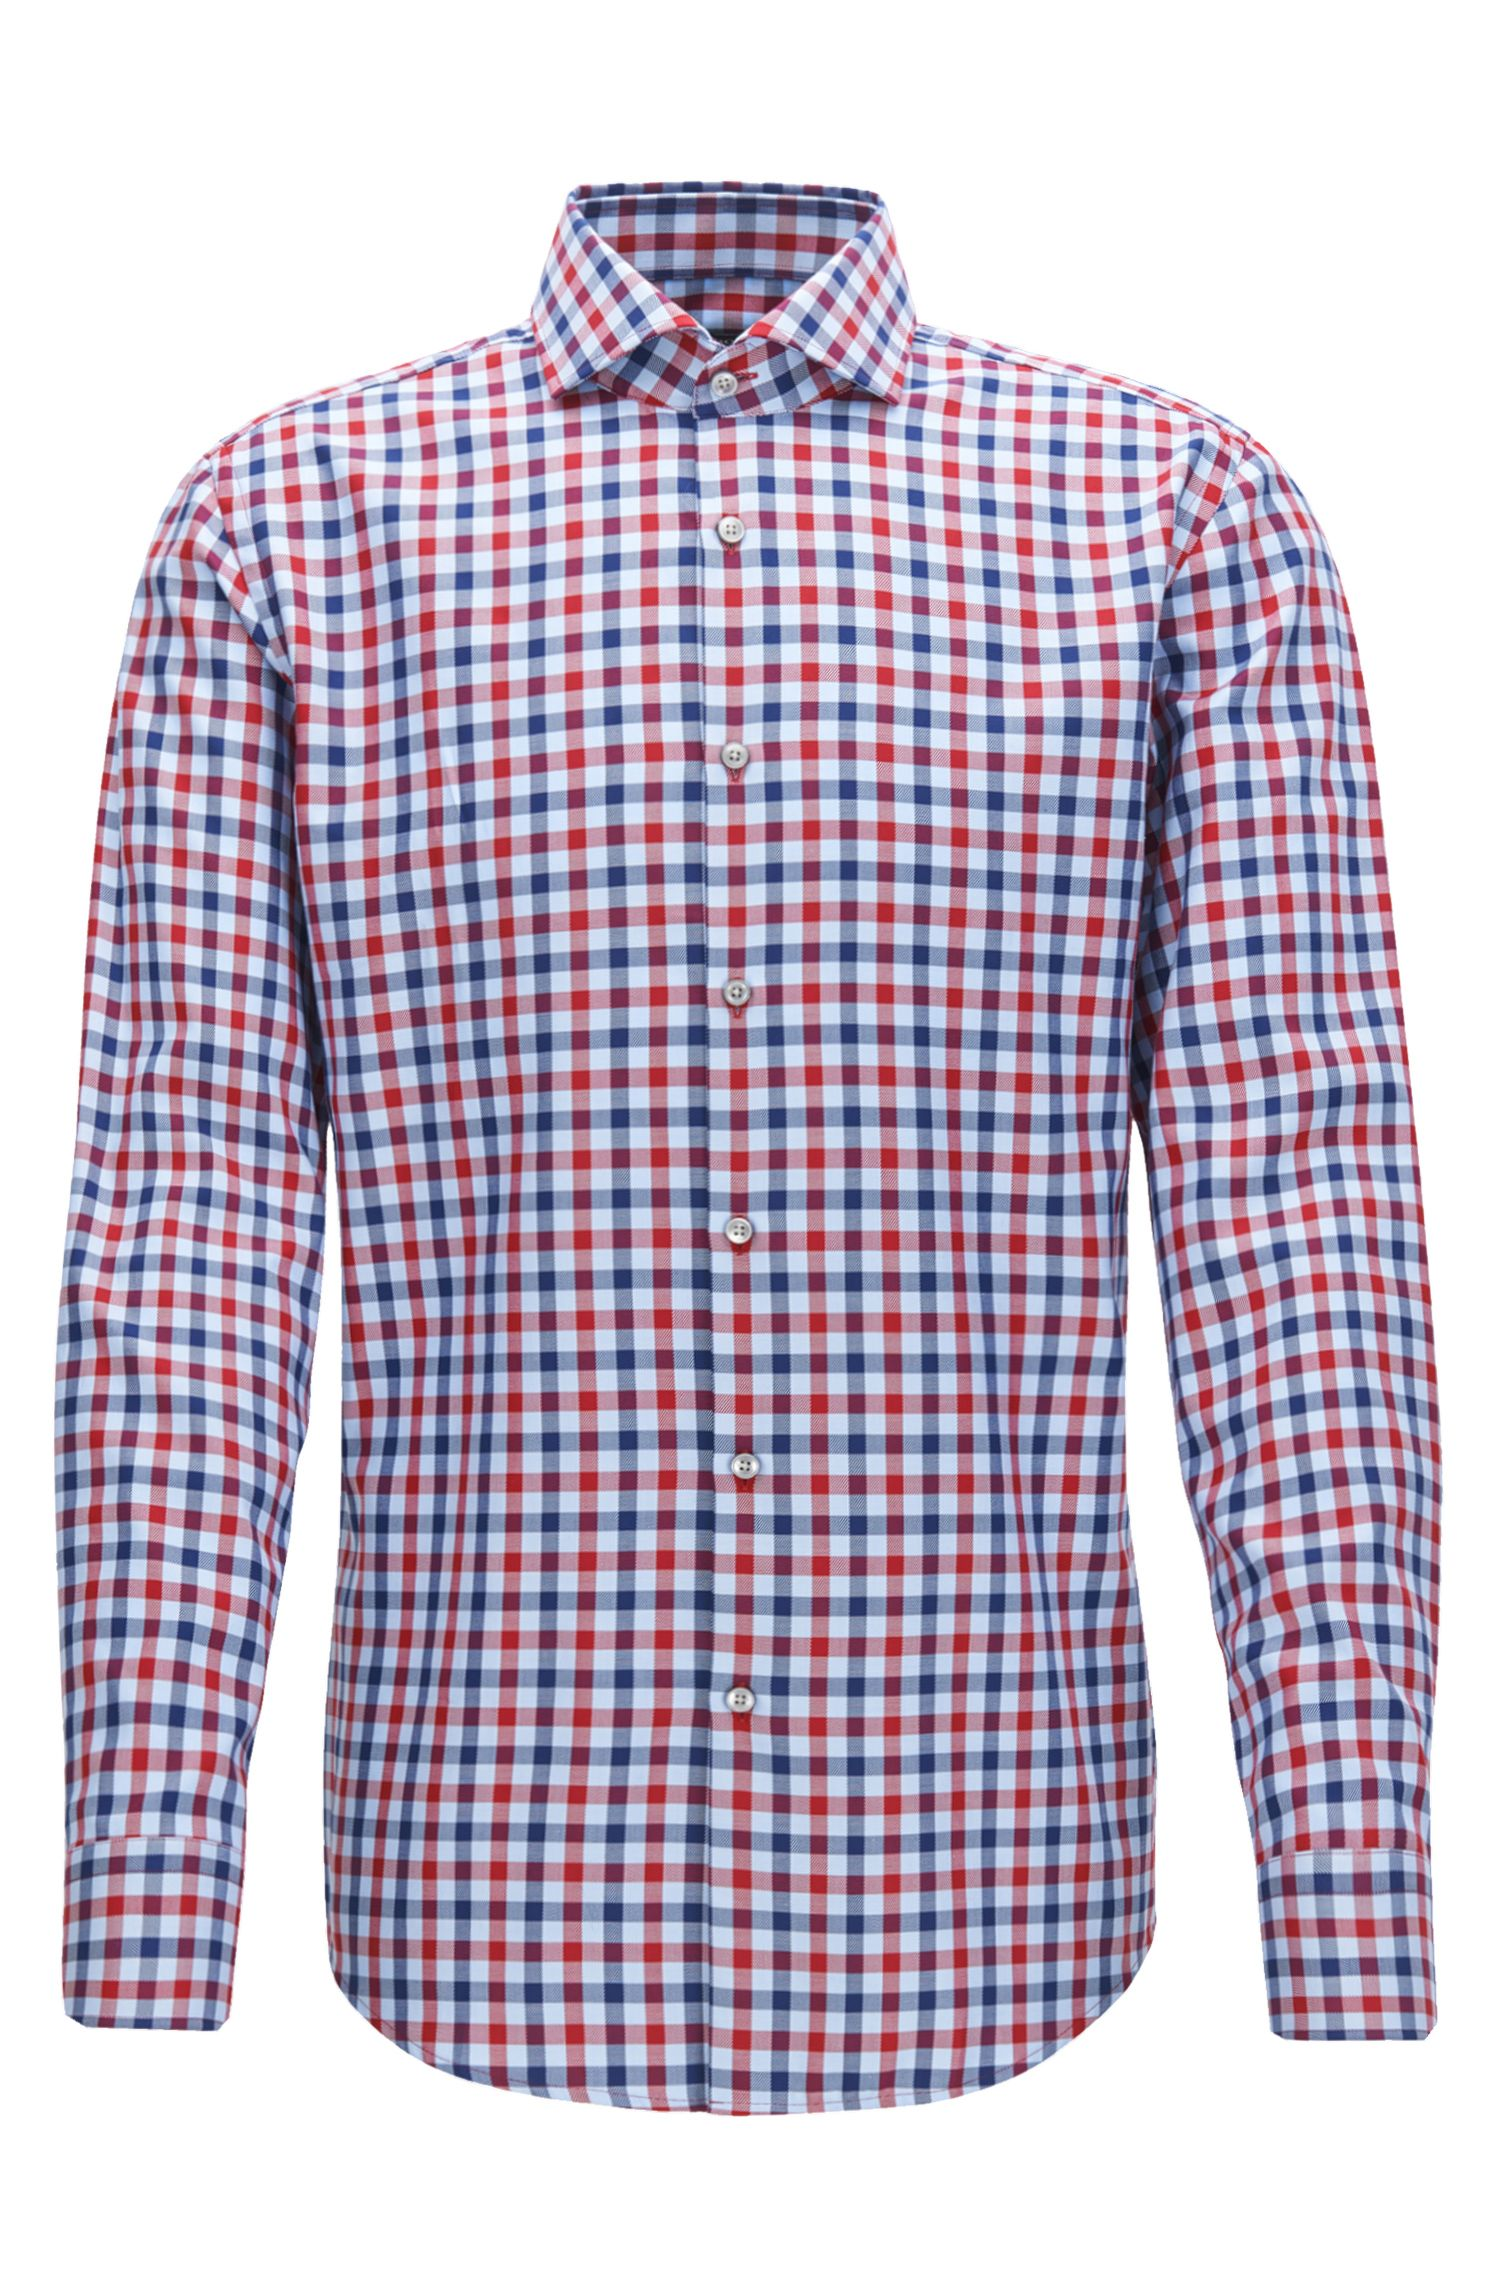 Check Cotton Dress Shirt, Slim Fit | Jason